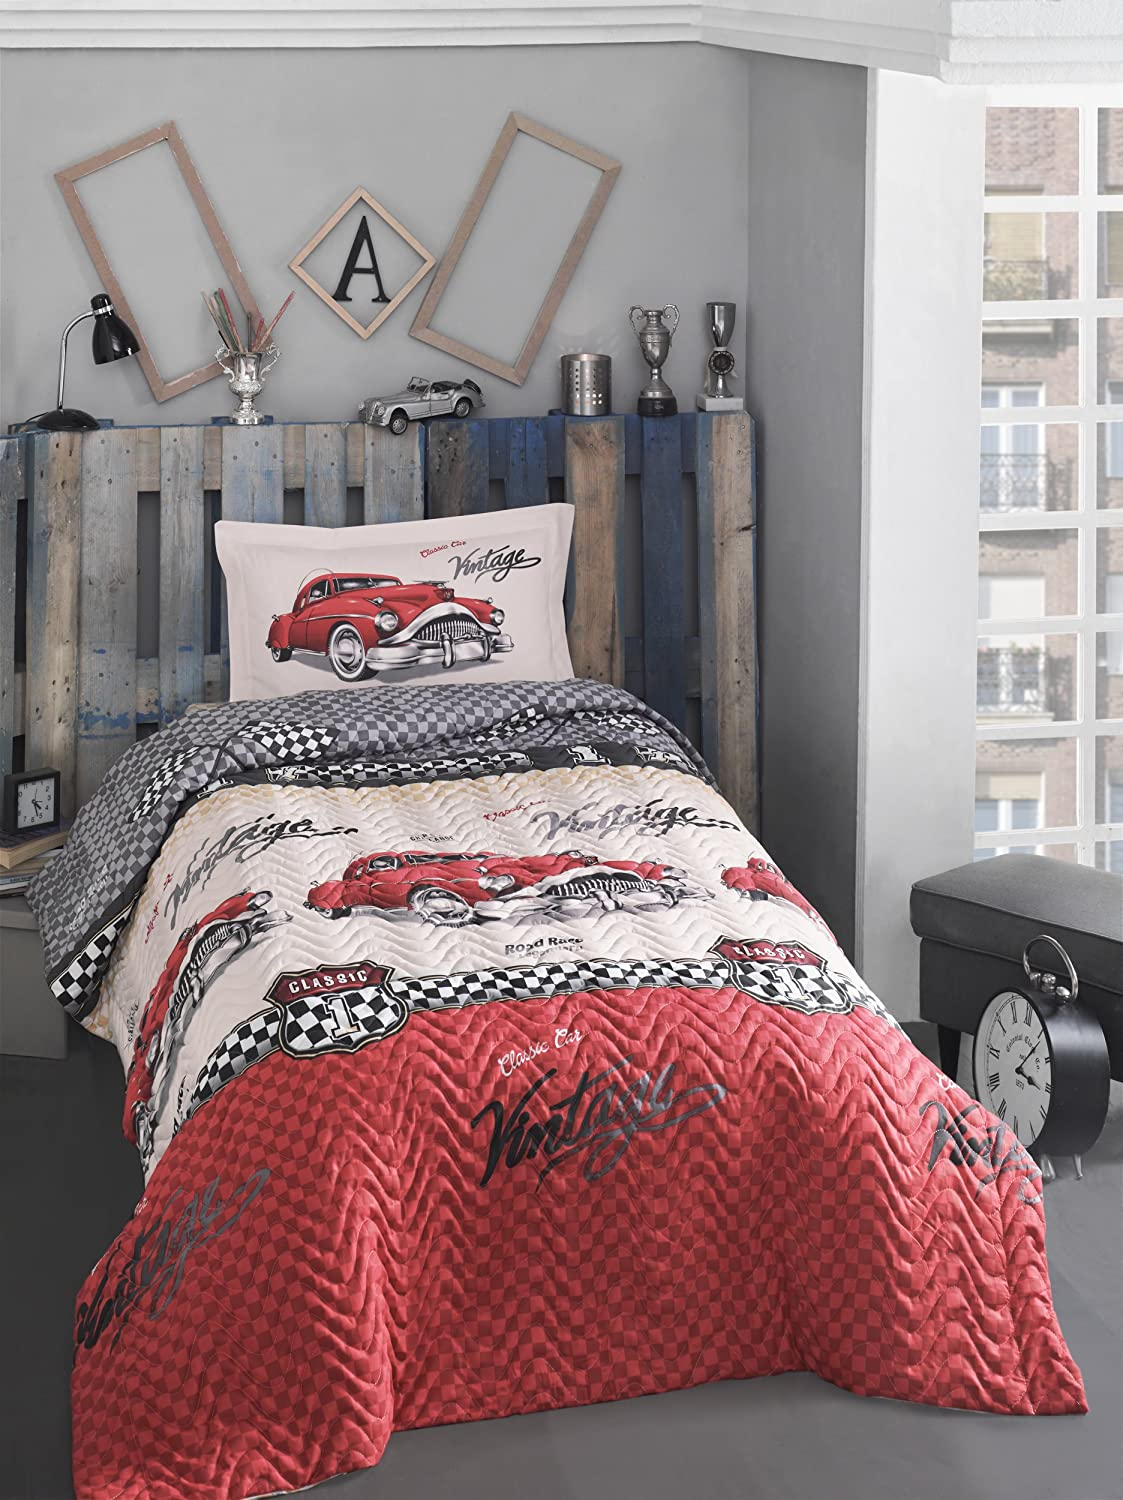 Classic Vintage cars bedding set, 100% Cotton Full/Twin Size Multifunctional Four Season Boys Bedding Set, Quilted Bedspread/Duvet Cover Set, 3 PCS, Red&White Bekata